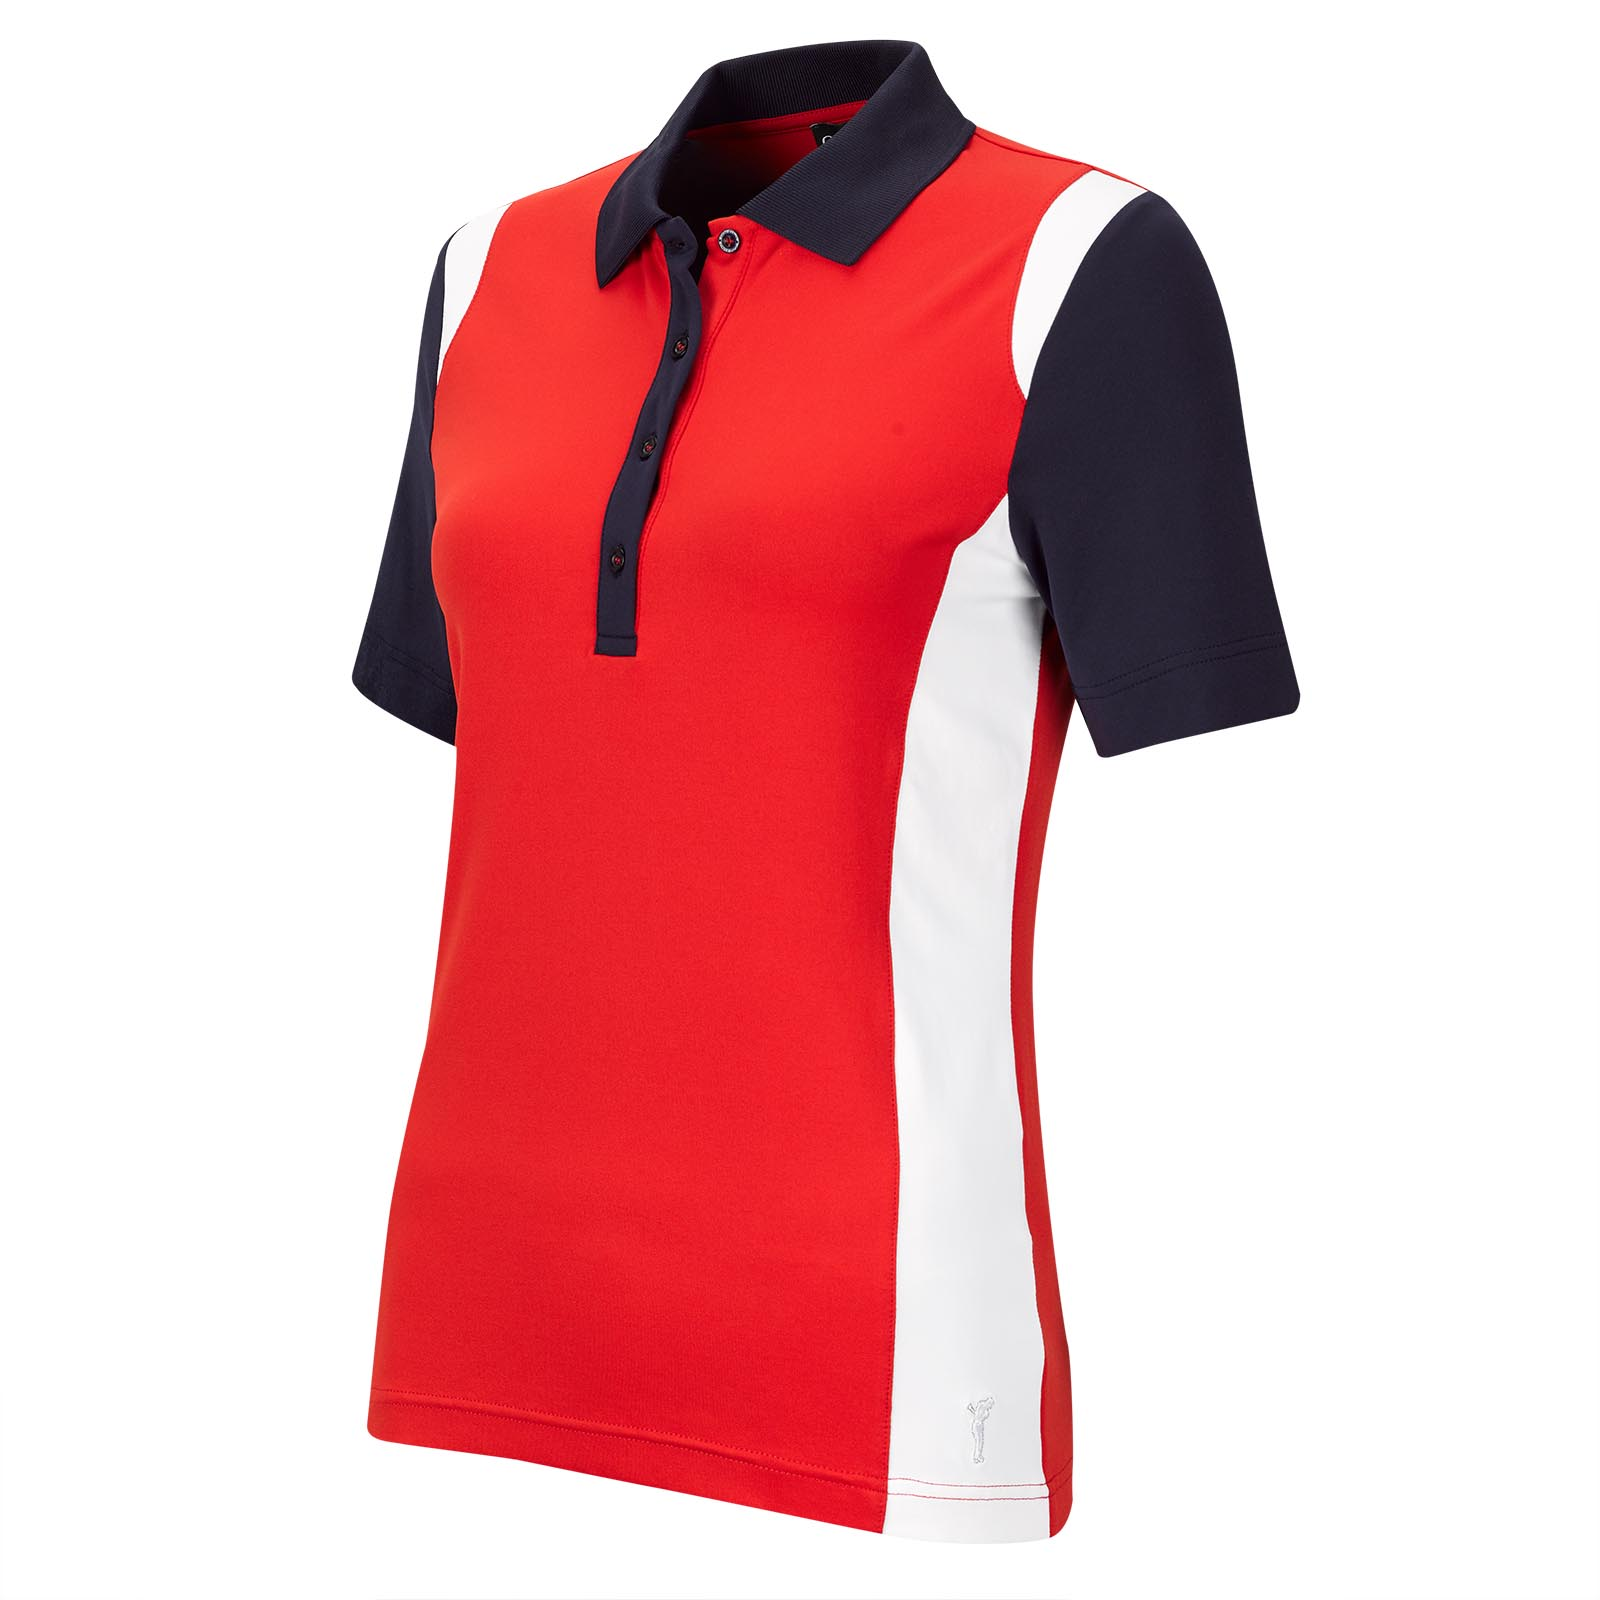 Short-sleeve Ladies' functional golf polo with Moisture Management in Pro Look